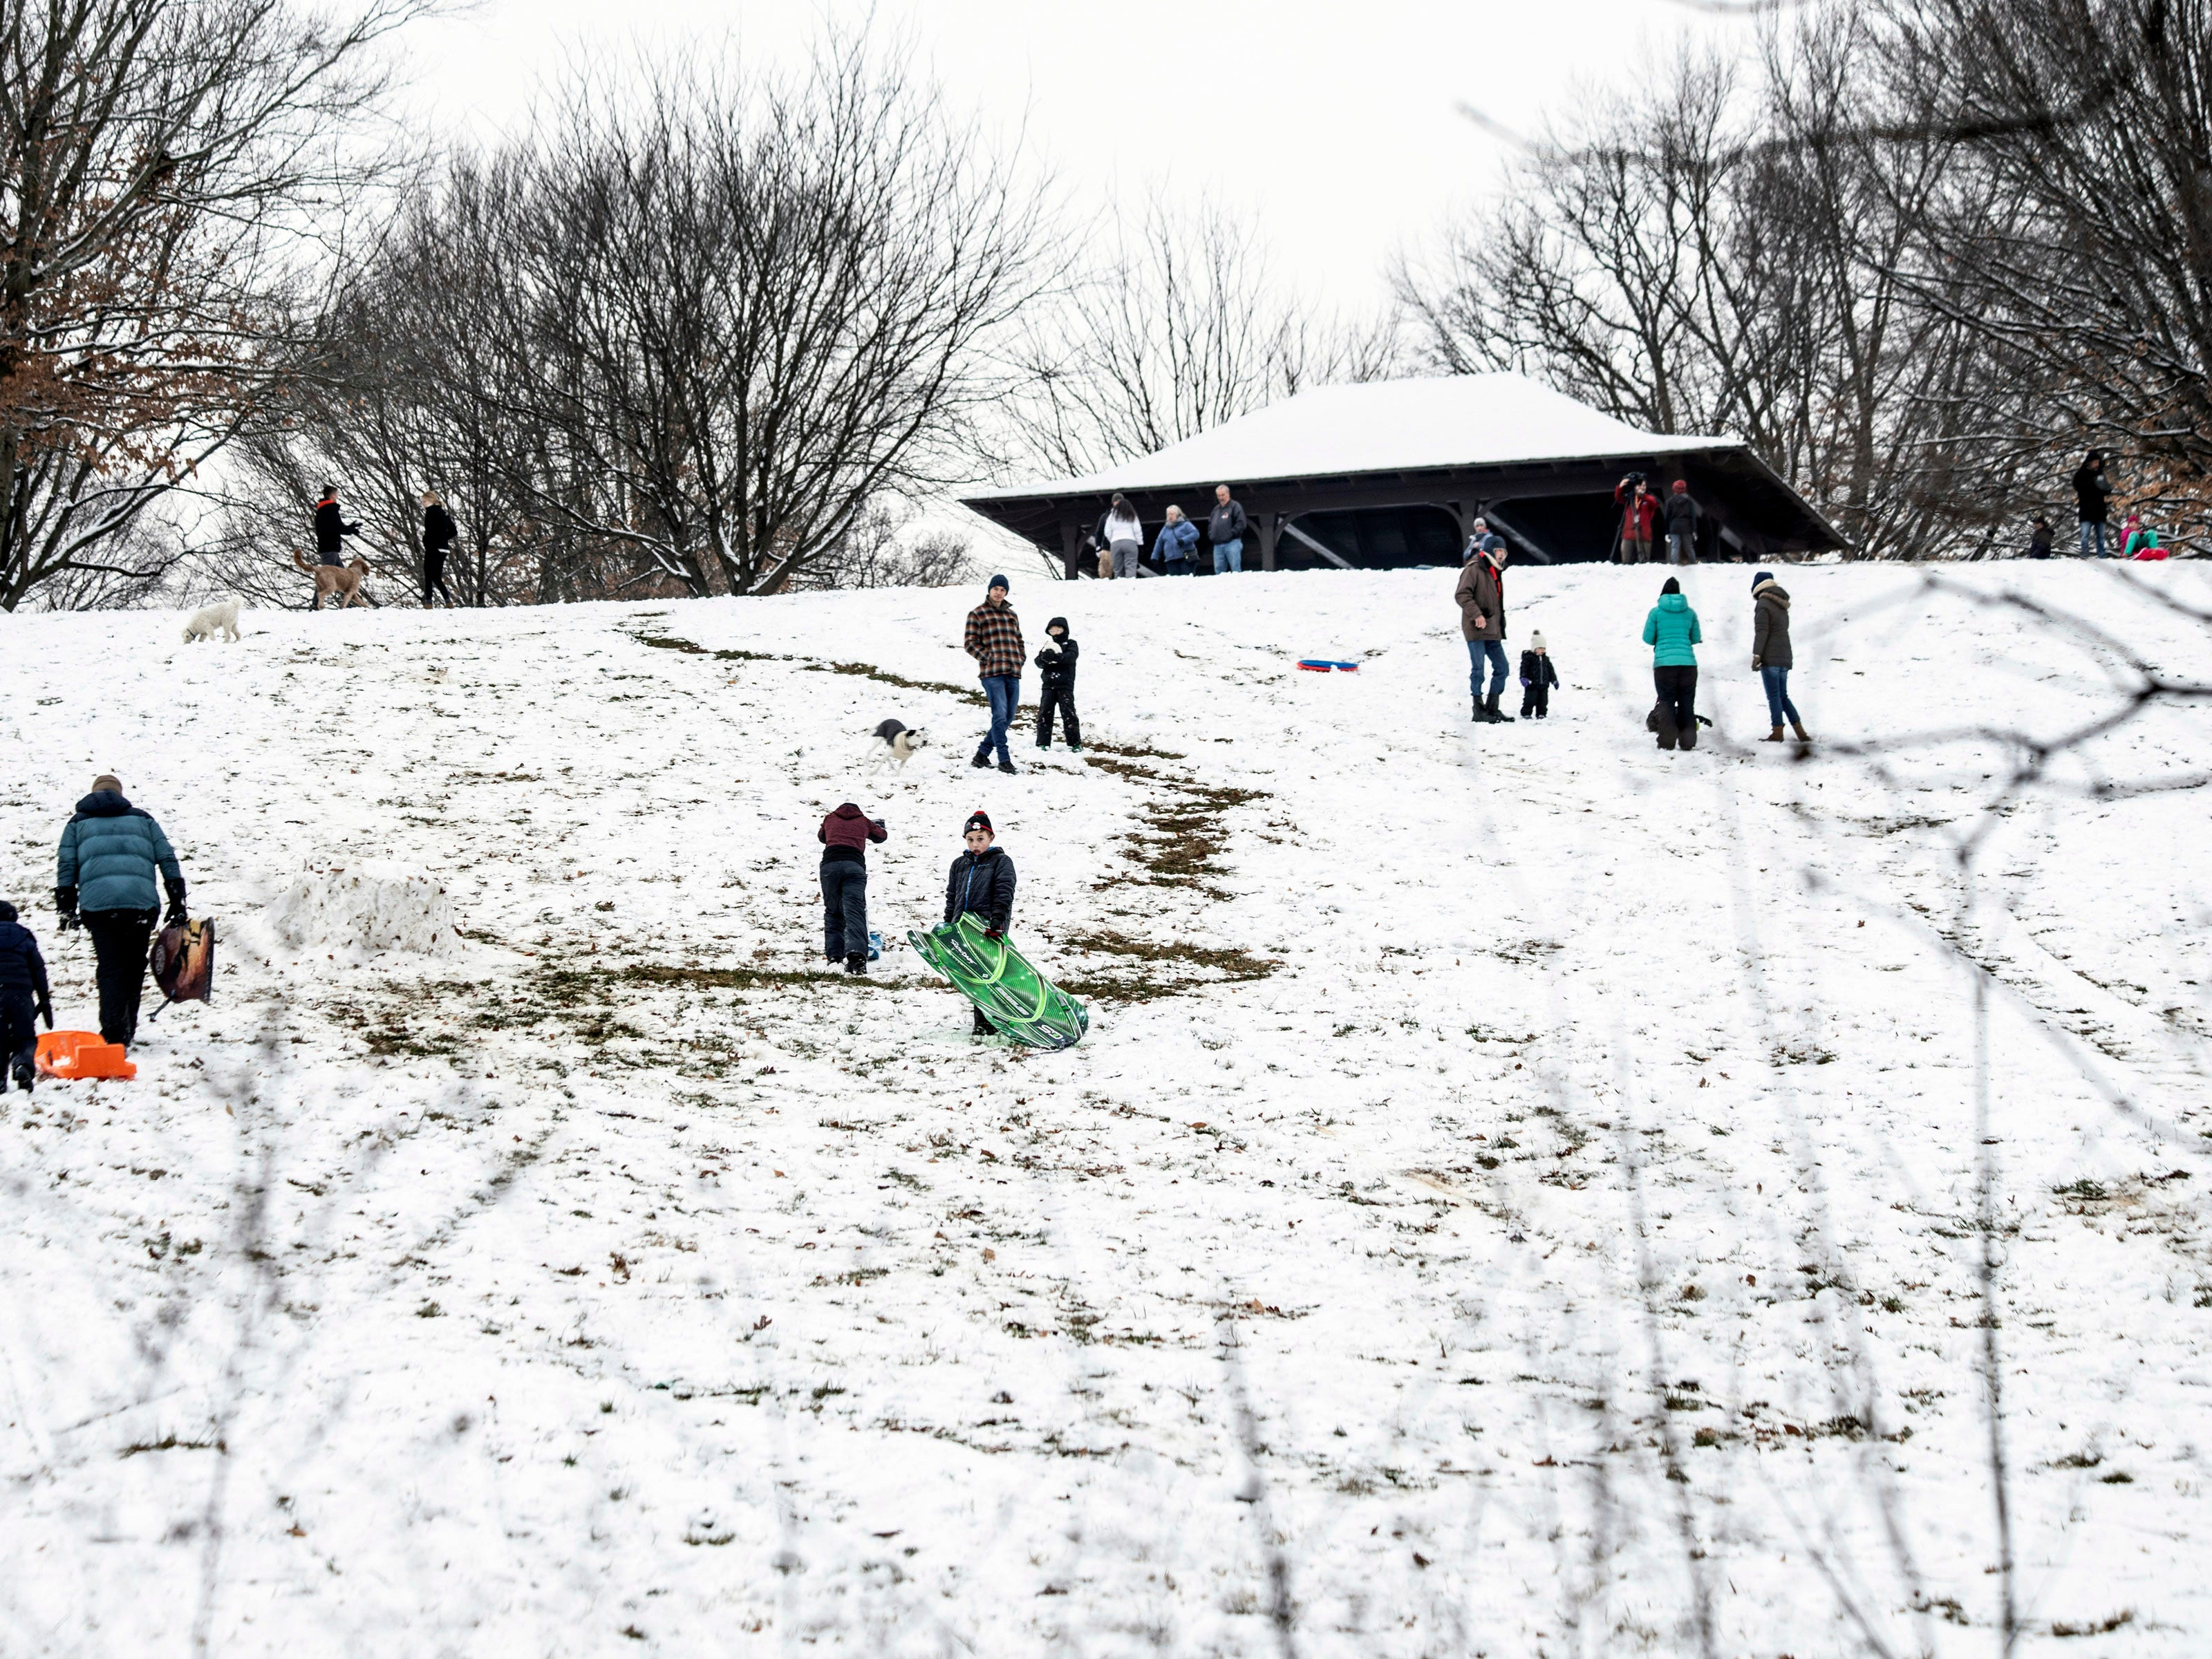 Sledders made the most of Louisville's first snowfall of 2019 at Baringer Hill (aka Dog Hill) in Cherokee Park on Saturday morning. 1/12/19